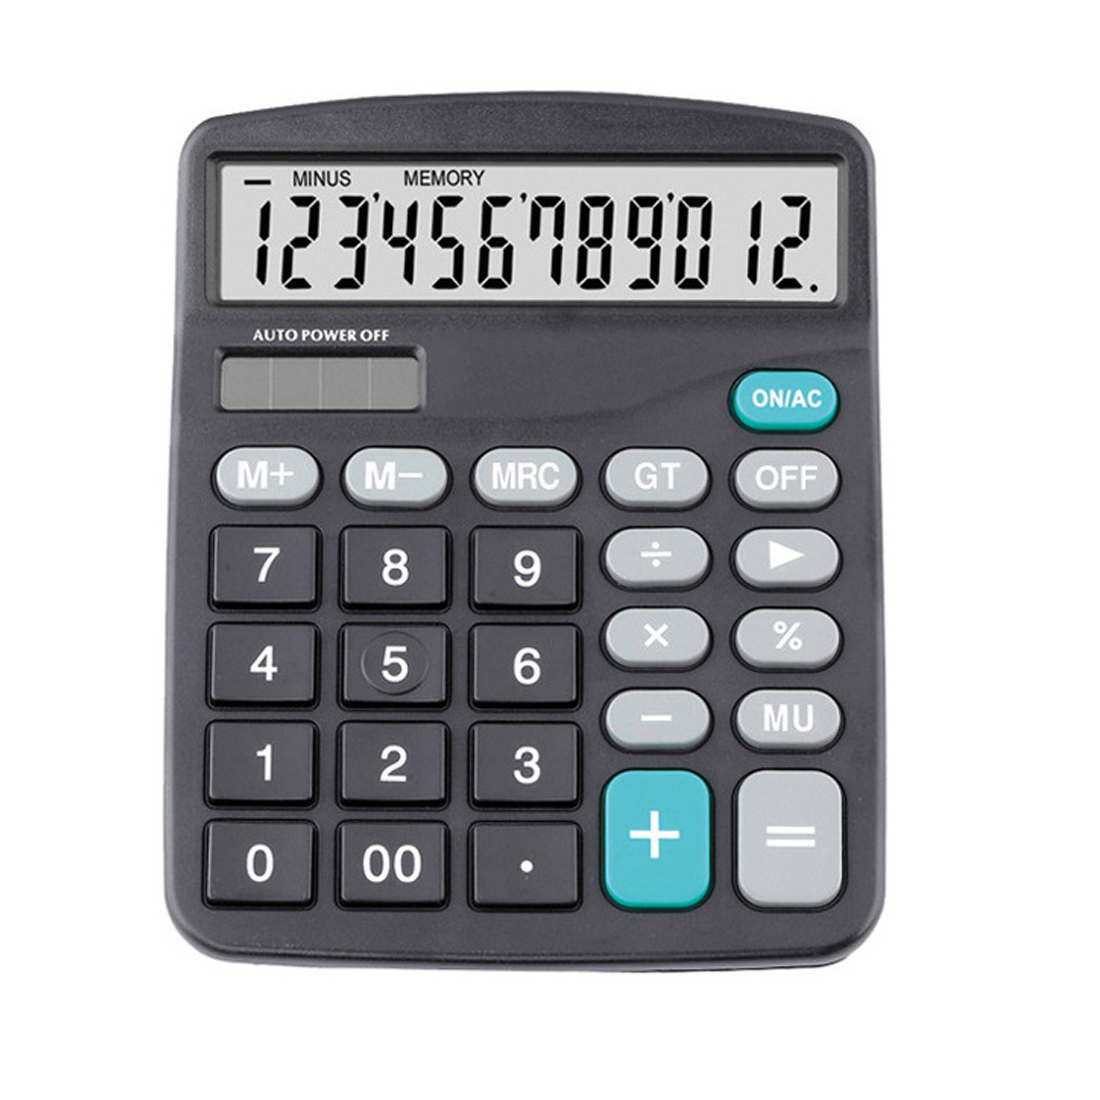 NOYOKERE Pro Solar Calculator Calculate Commercial Tool Battery or Solar 2in1 Powered 12 Digit Electronic Calculator and ButtonNOYOKERE Pro Solar Calculator Calculate Commercial Tool Battery or Solar 2in1 Powered 12 Digit Electronic Calculator and Button